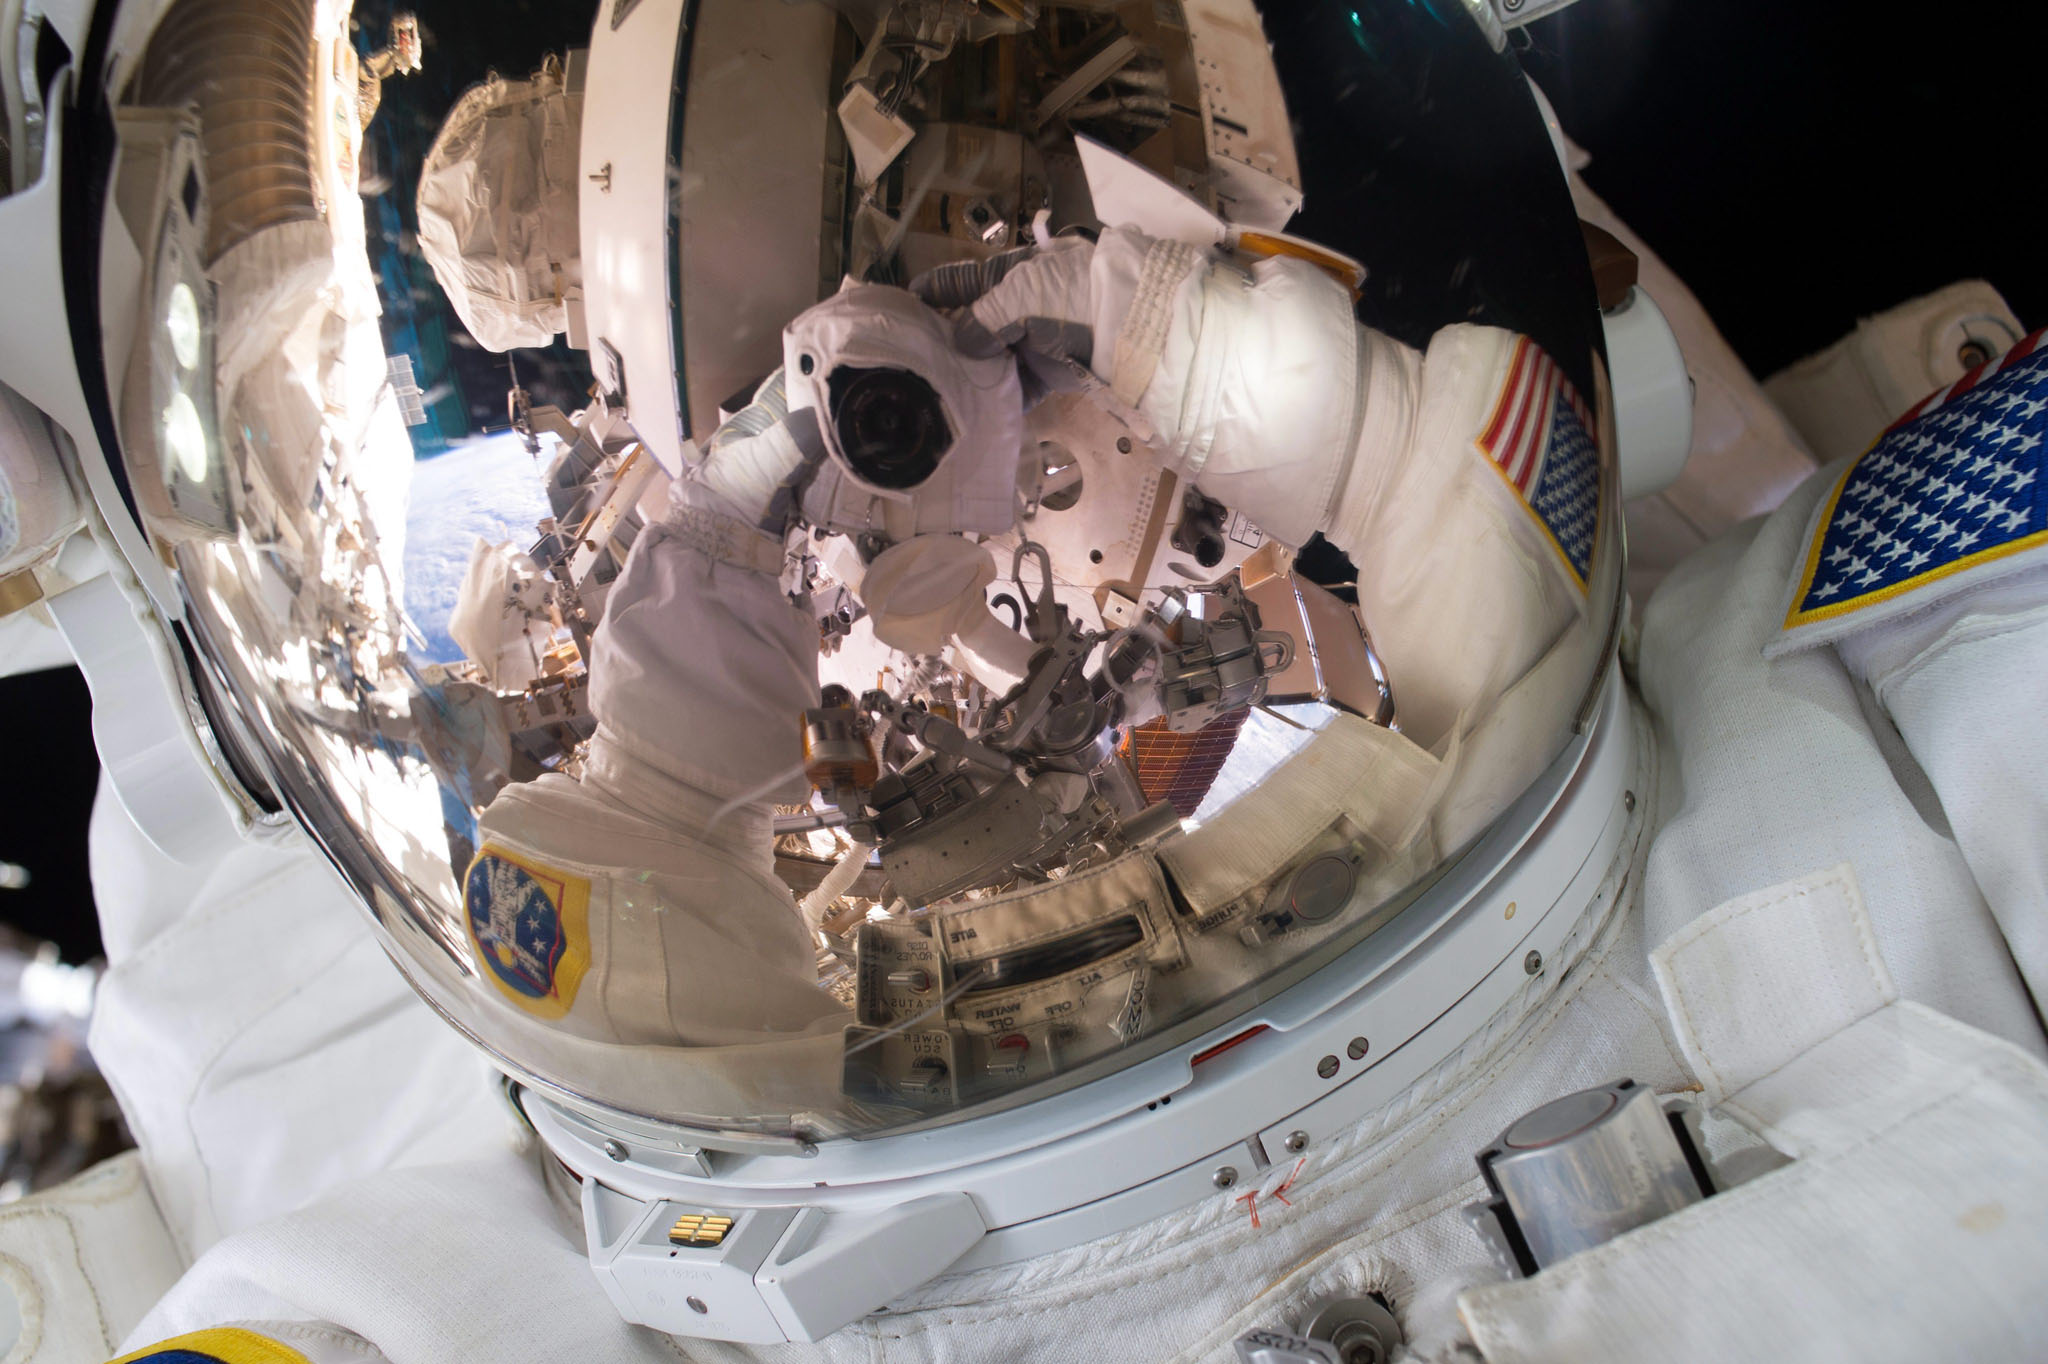 Expedition 45 Commander Scott Kelly's spacewalk selfie...epa05003126 A handout picture released 30 October 2015 and dated 28 October 2015, provided by NASA, shows Expedition 45 Commander Scott Kelly during a spacewalk. Sharing the image on social media, Kelly wrote, '#SpaceWalkSelfie Back on the grid! Great first spacewalk yesterday. Now on to the next one next week. #YearInSpace'. According to NASA, this was the first spacewalk for both Kelly and Flight Engineer Kjell Lindgren; the two will venture outside the International Space Station for the second time on 06 November 2015.  EPA/NASA / SCOTT KELLY / HANDOUT  HANDOUT EDITORIAL USE ONLY